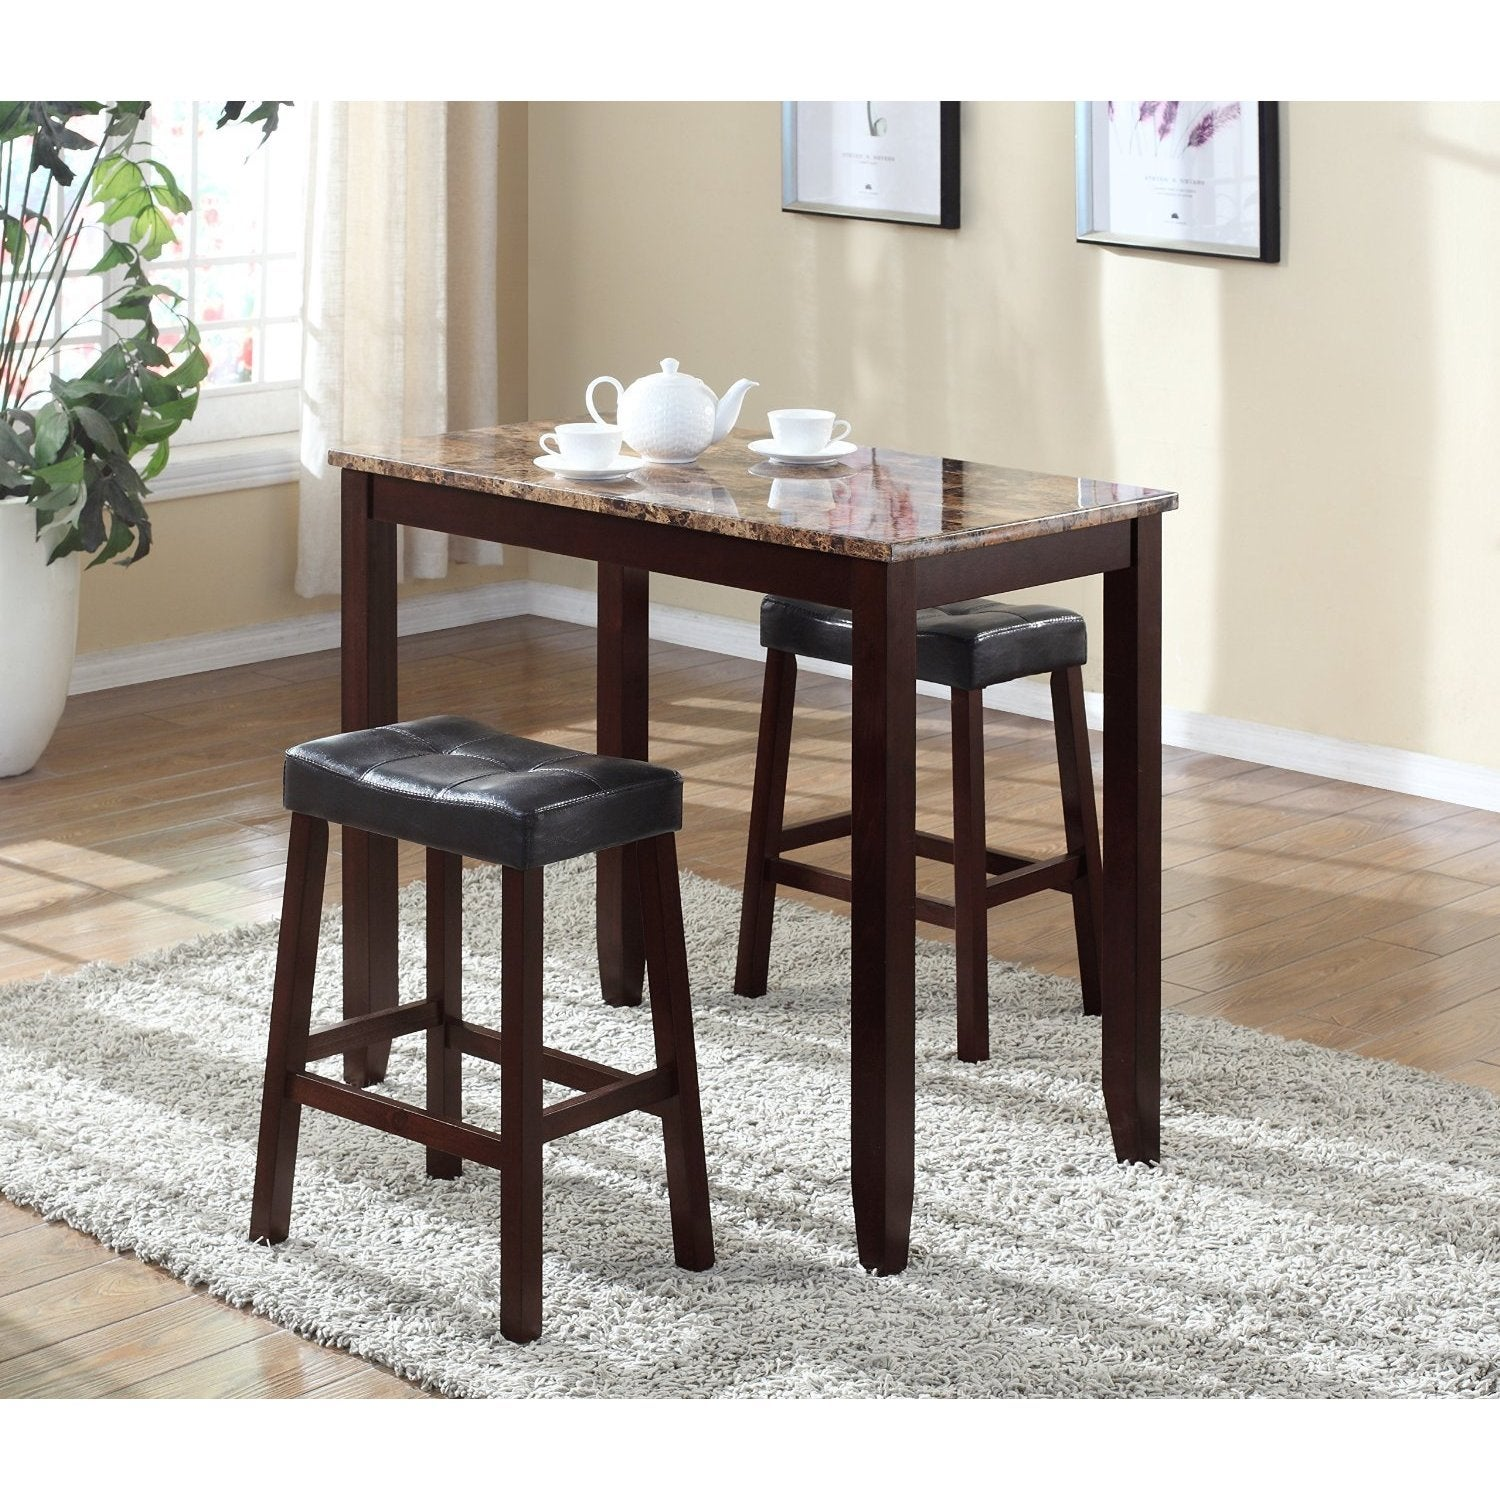 3 Piece Counter Height Table and Saddleback Stools with F...